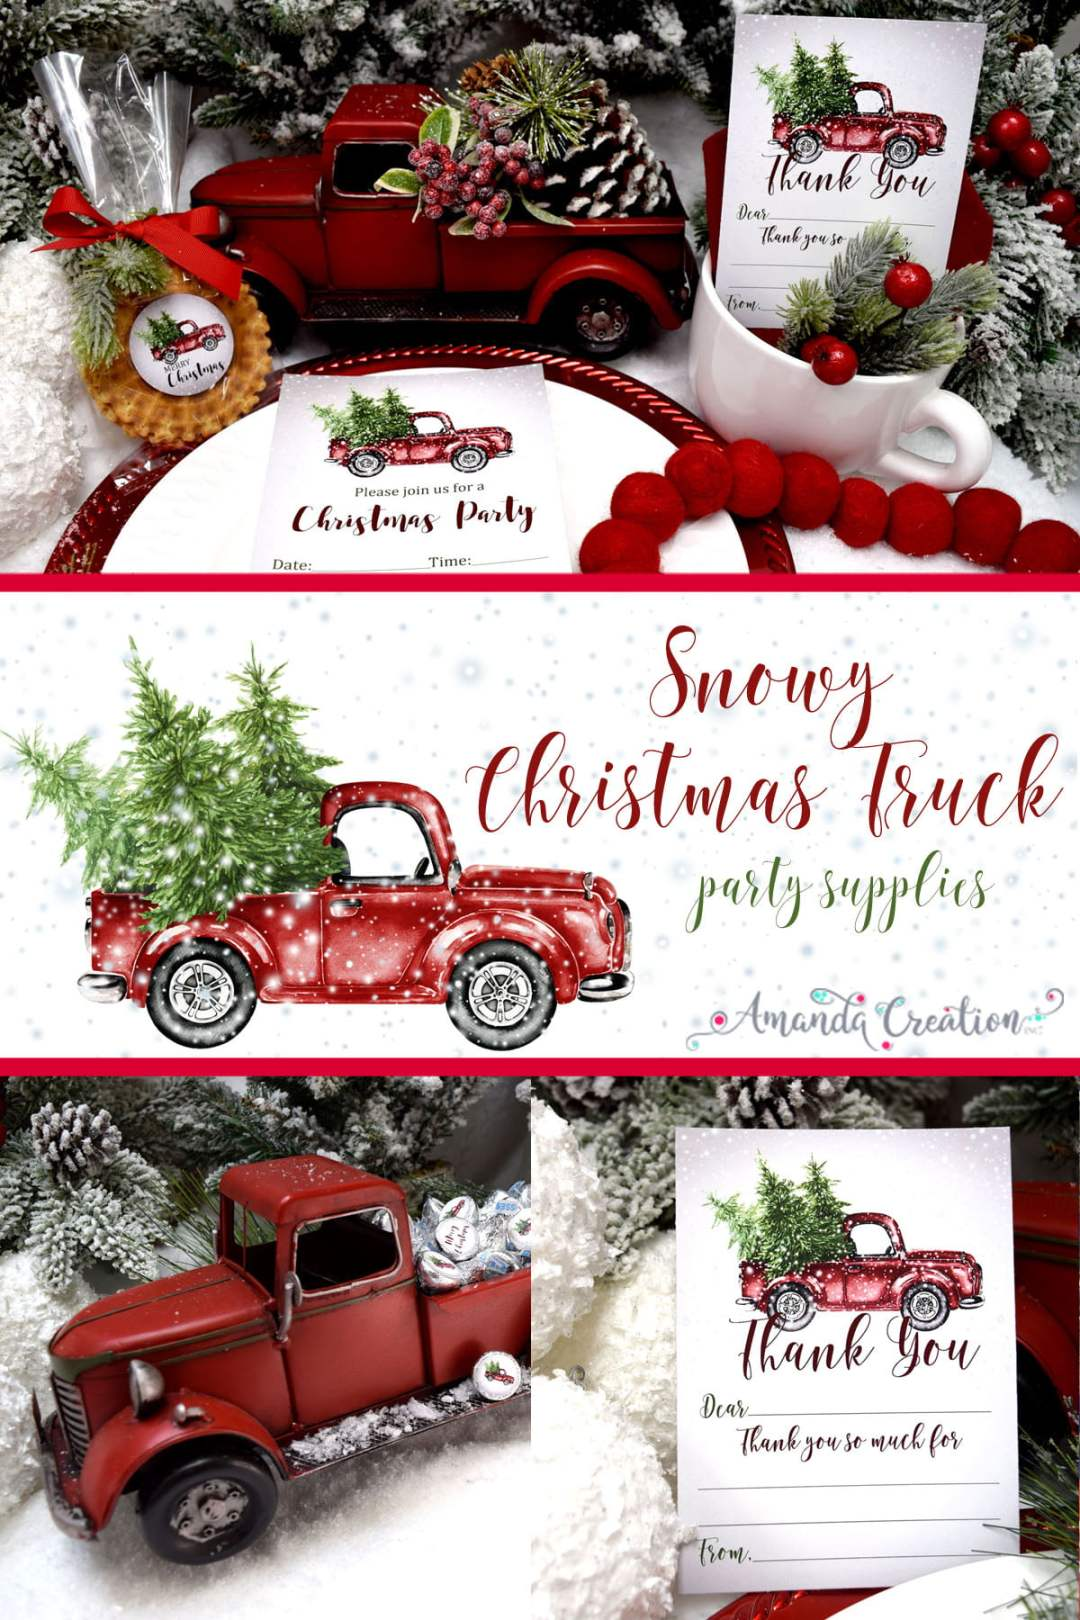 Christmas truck party supplies